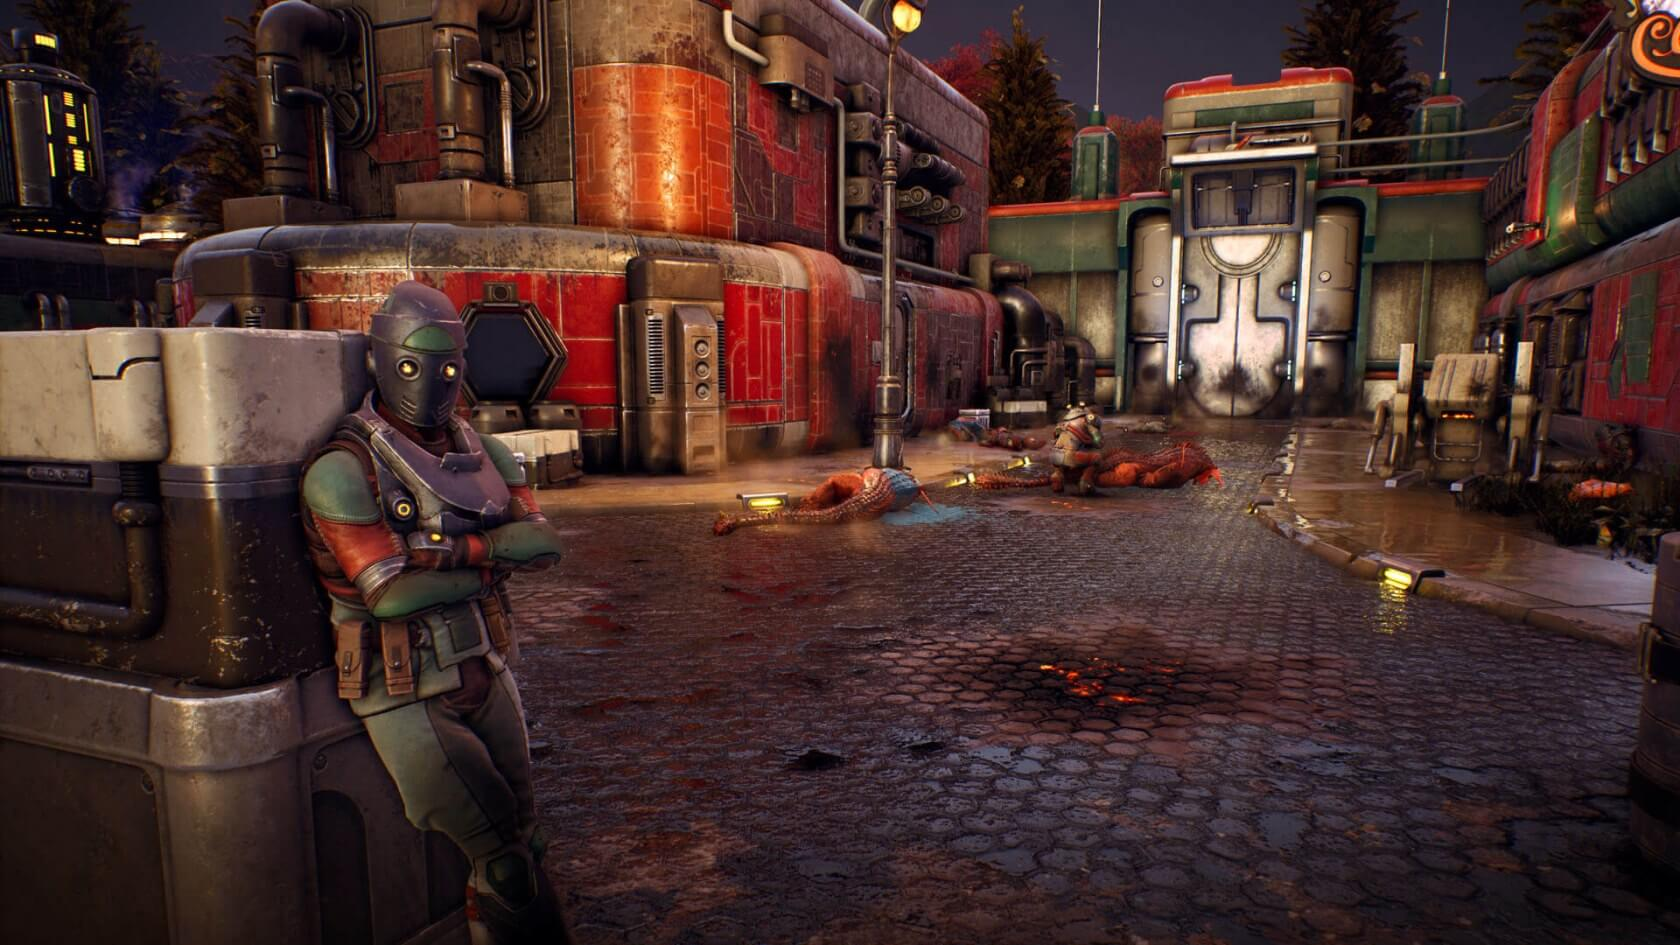 The Outer Worlds is Getting Story DLC Next Year